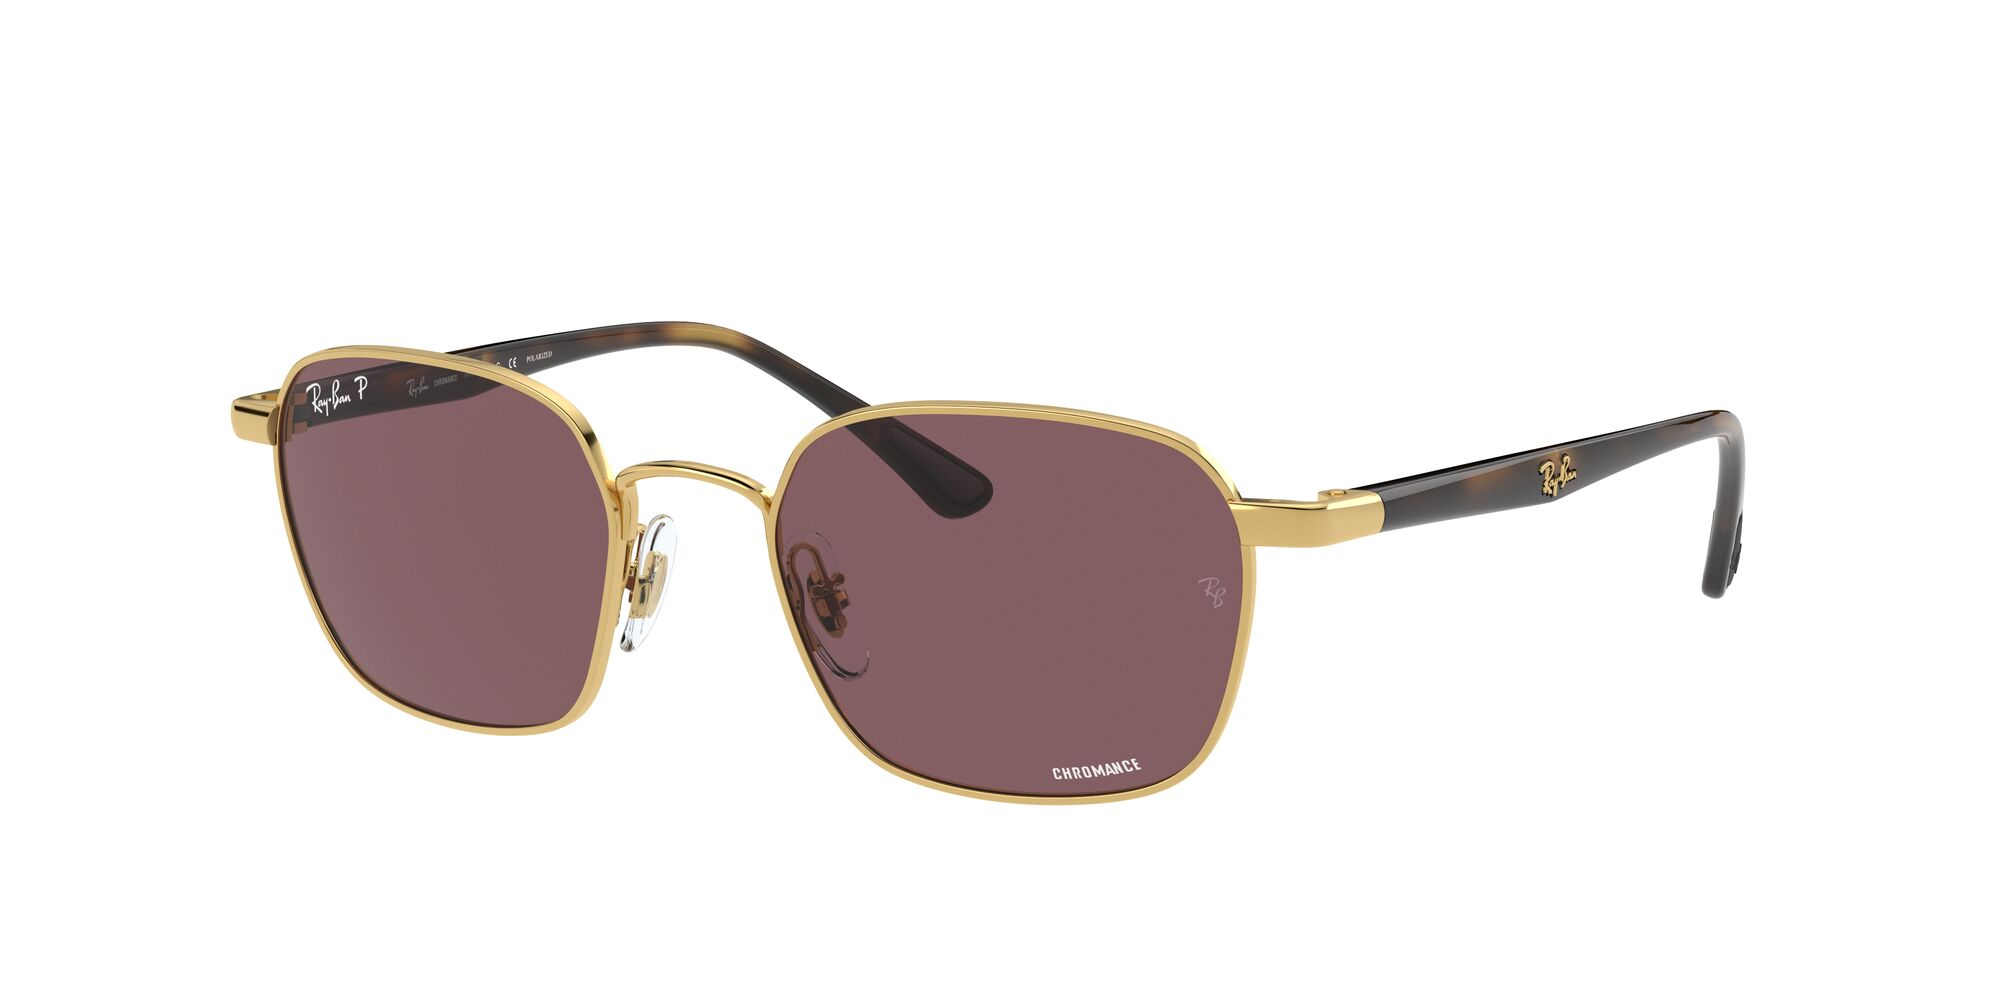 Angle_Left01 Ray-Ban Ray-Ban 0RB3664CH 001/BC 50/19 Goud/Paars